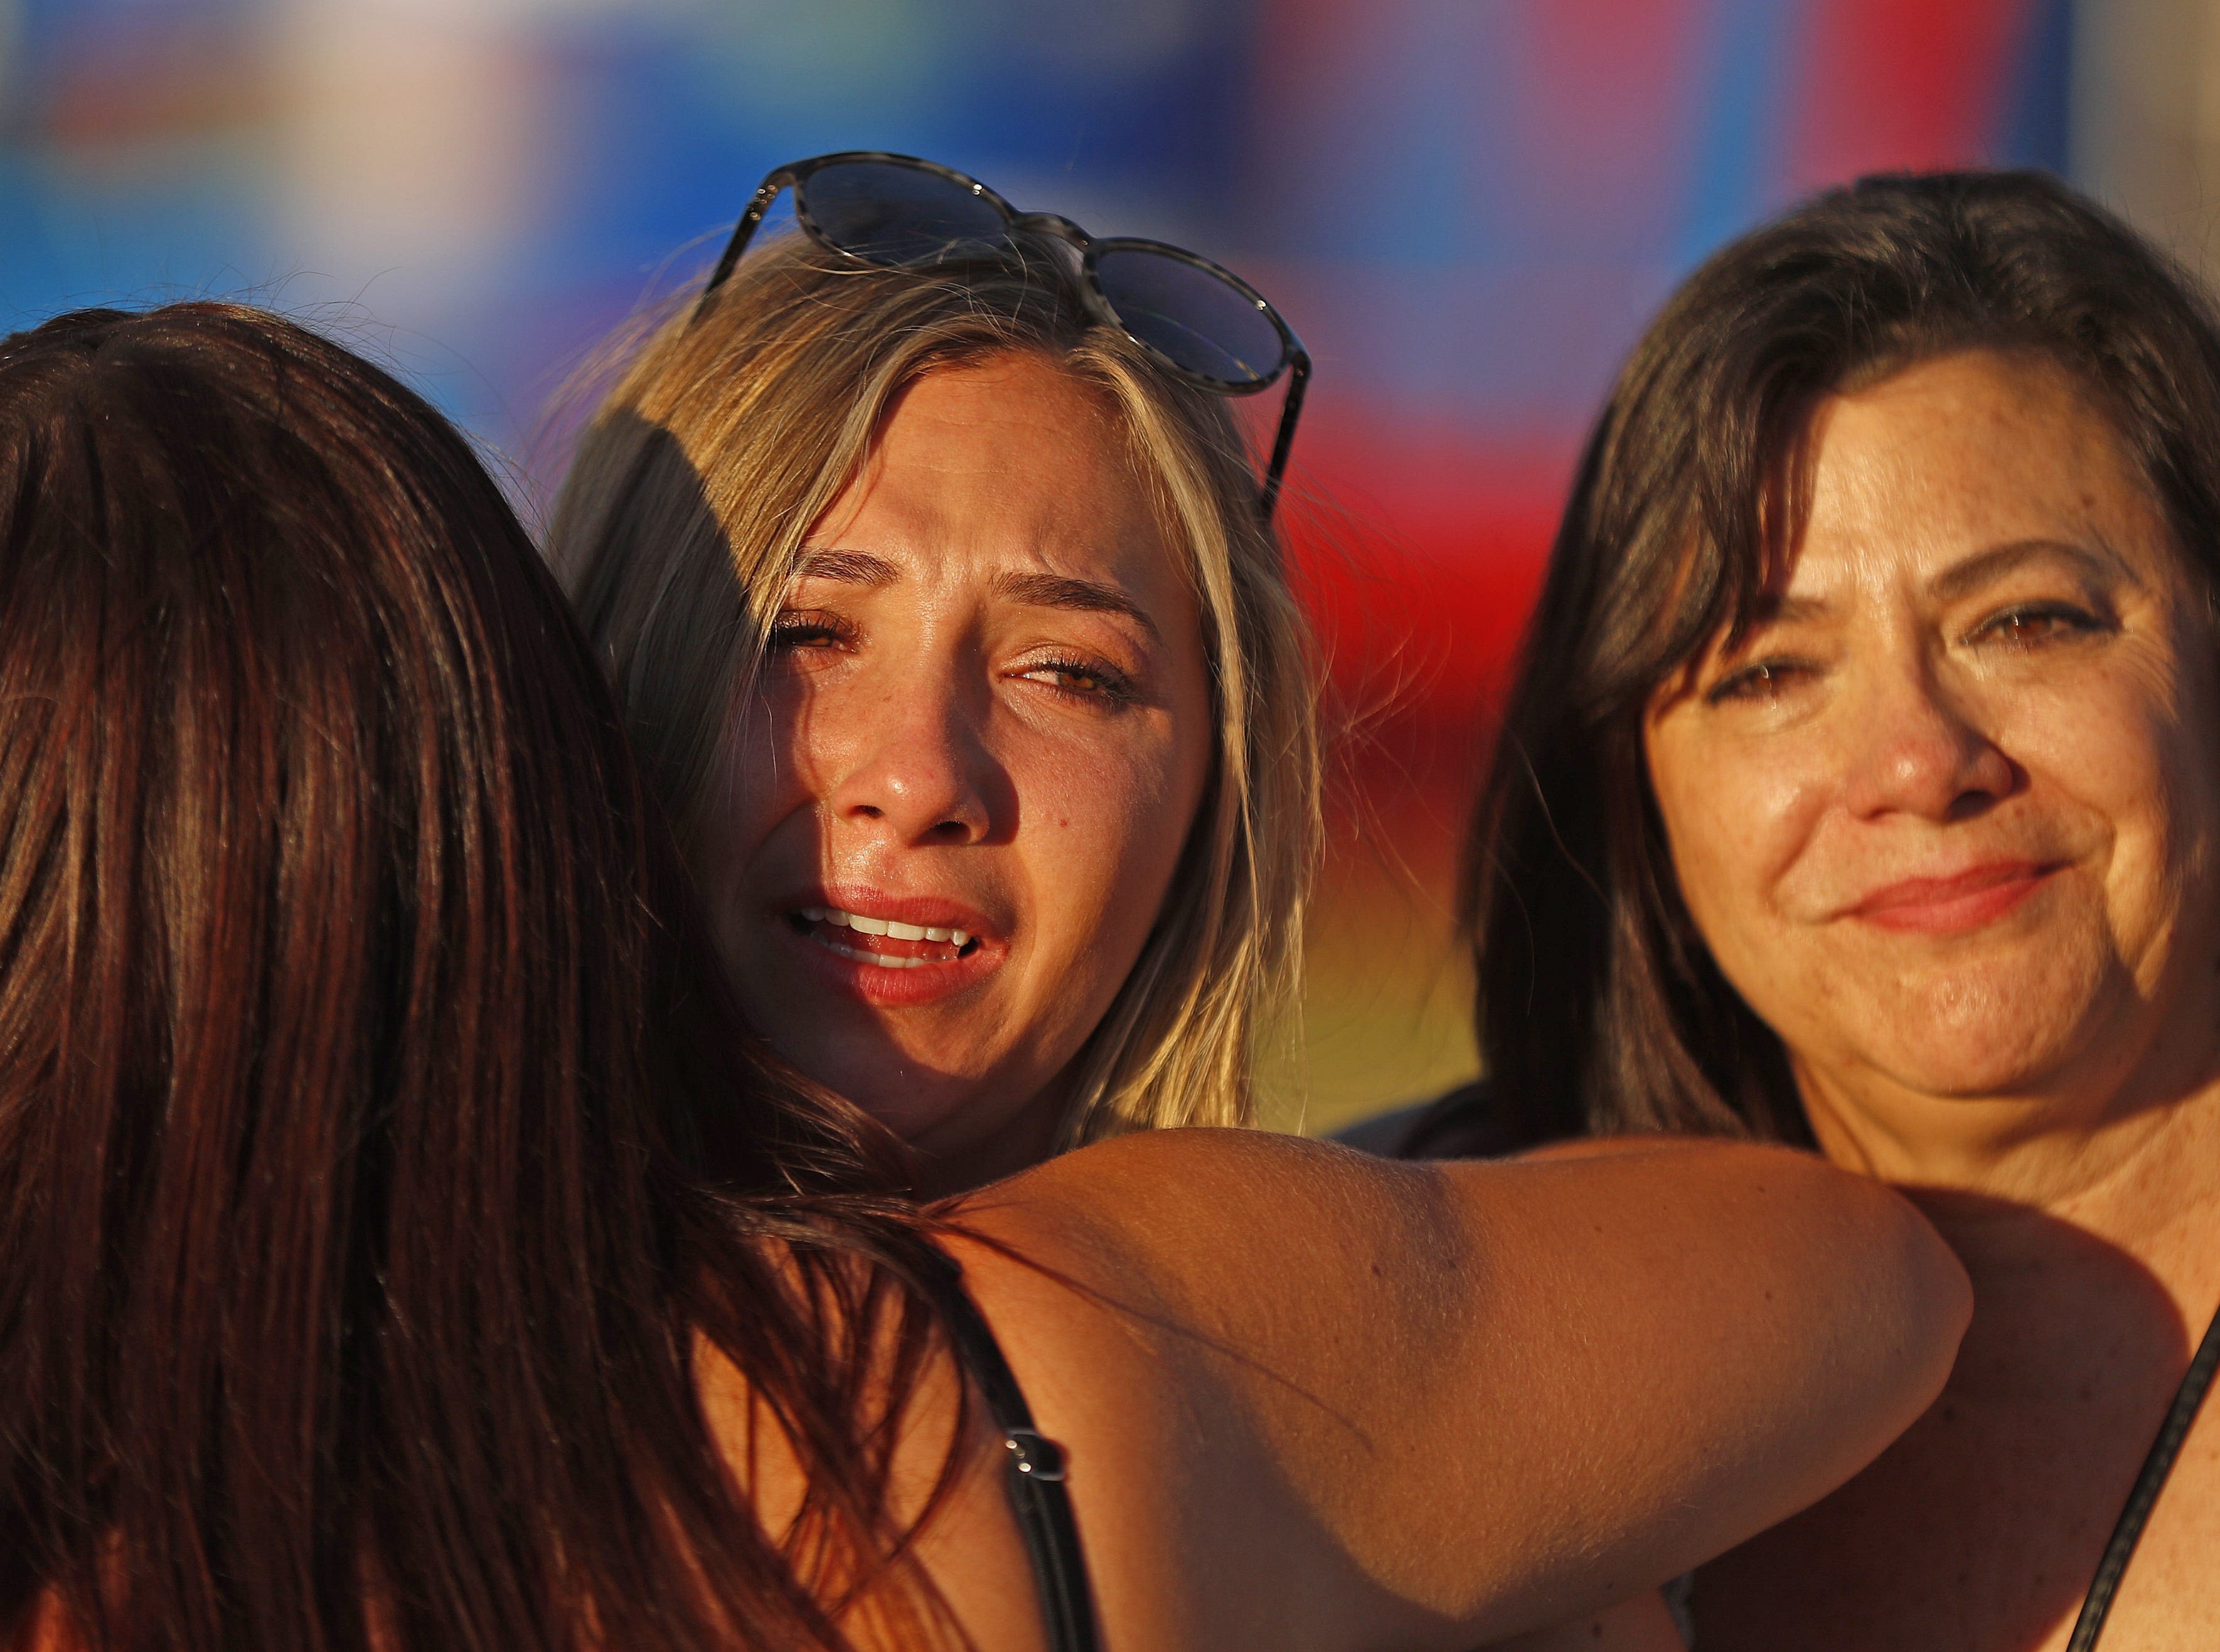 Kalynn Alicata (right) receives a hug from another survivor of the Route 91 Harvest Festival shooting during Country Thunder in Florence, Arizona, on April 13, 2019.